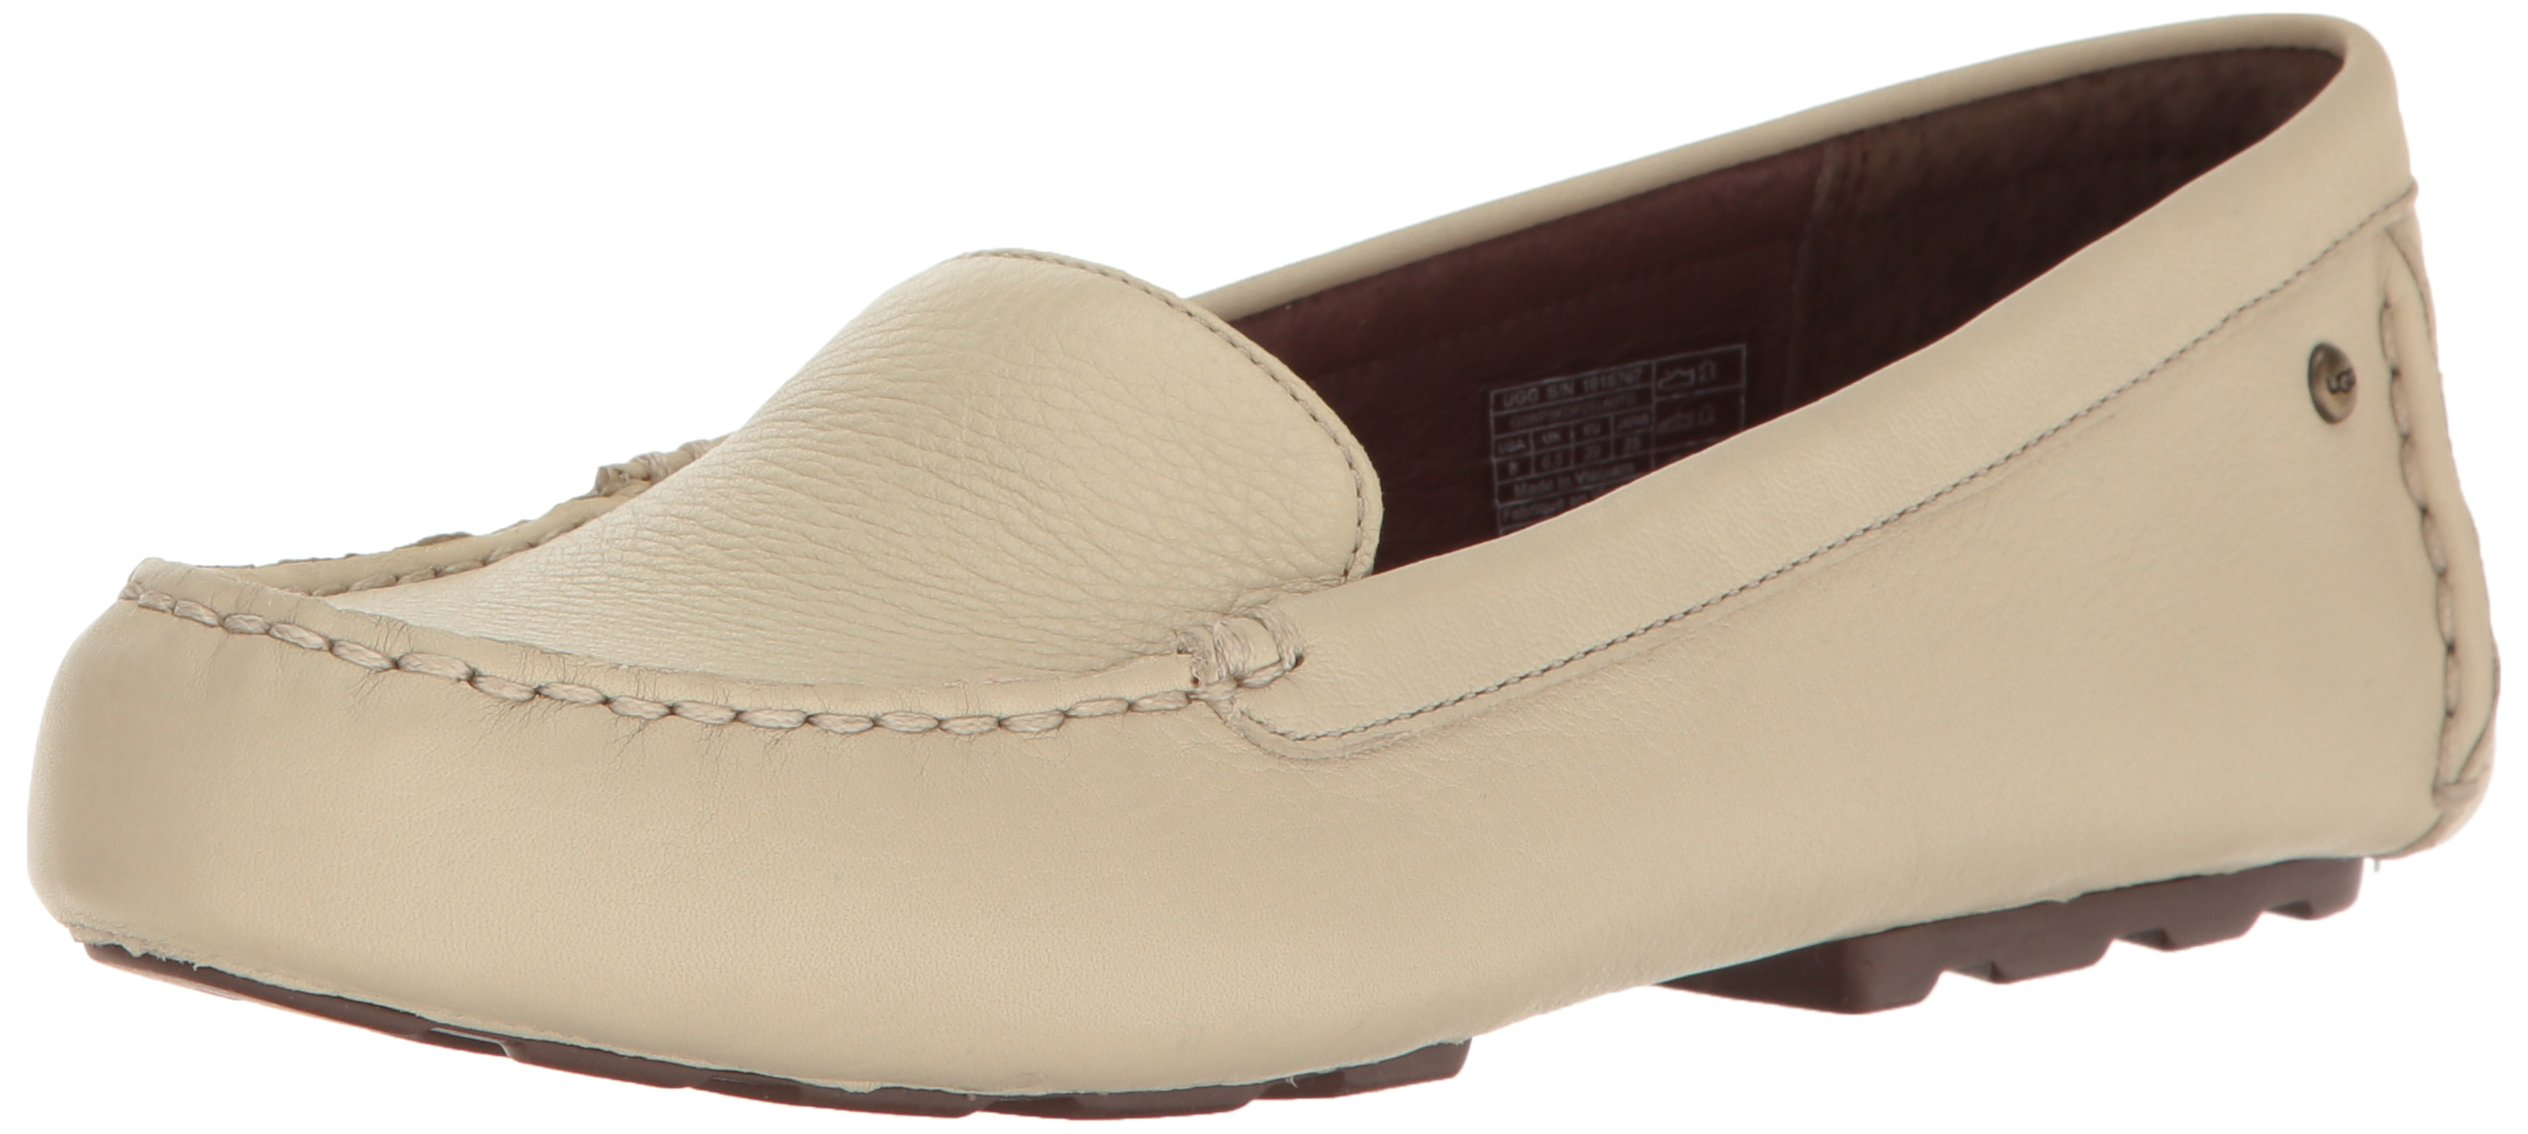 UGG Women's Milana Boat Shoe, Canvas, 7.5 B US